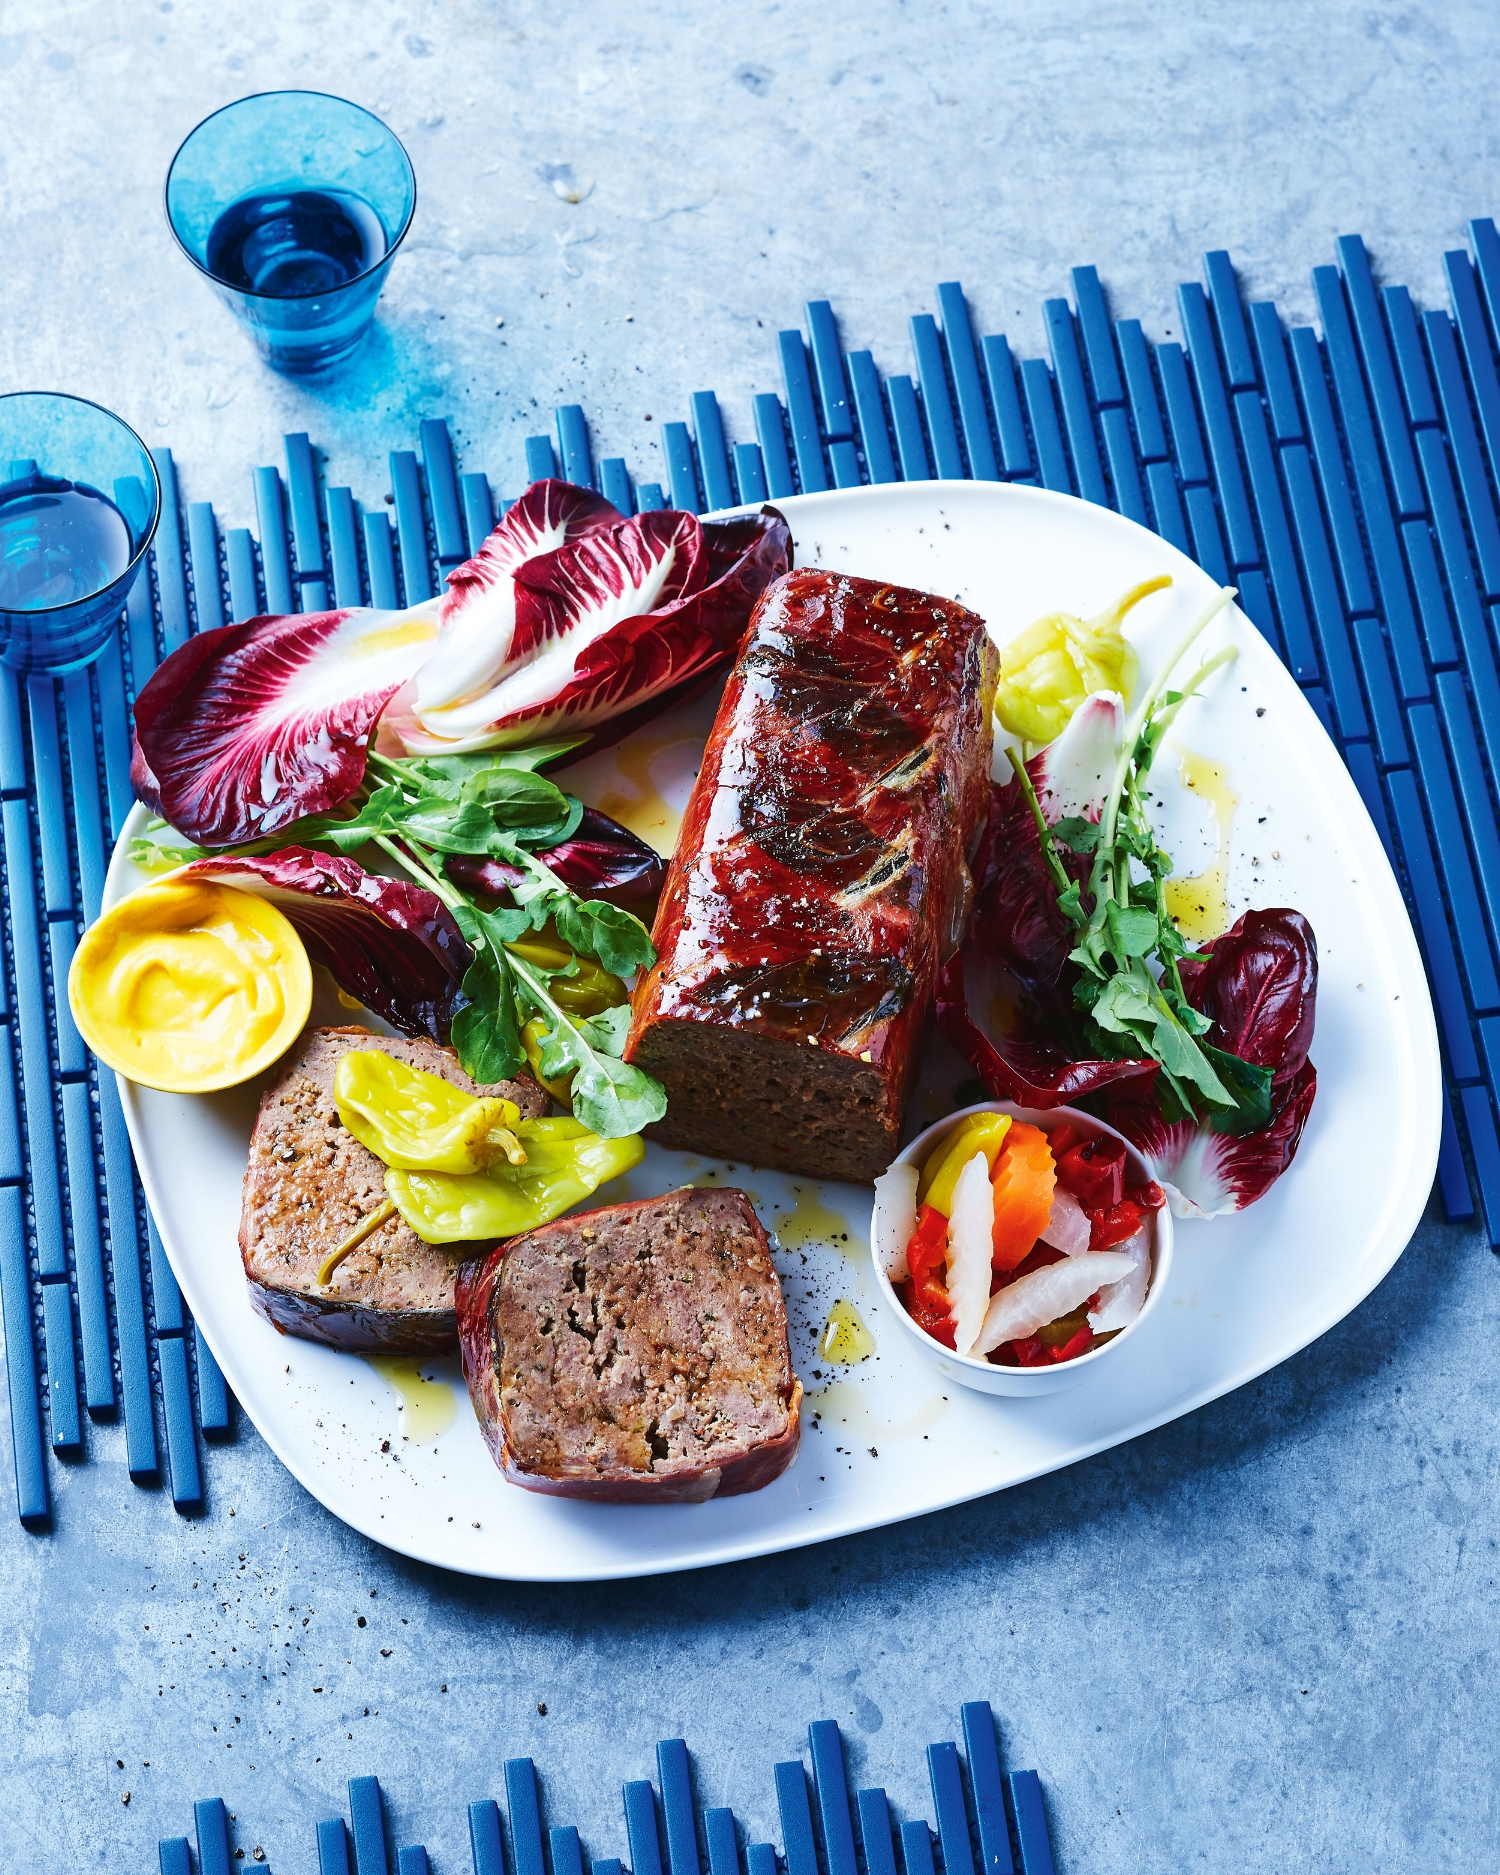 Meatloaf recipe Hayden Quinn